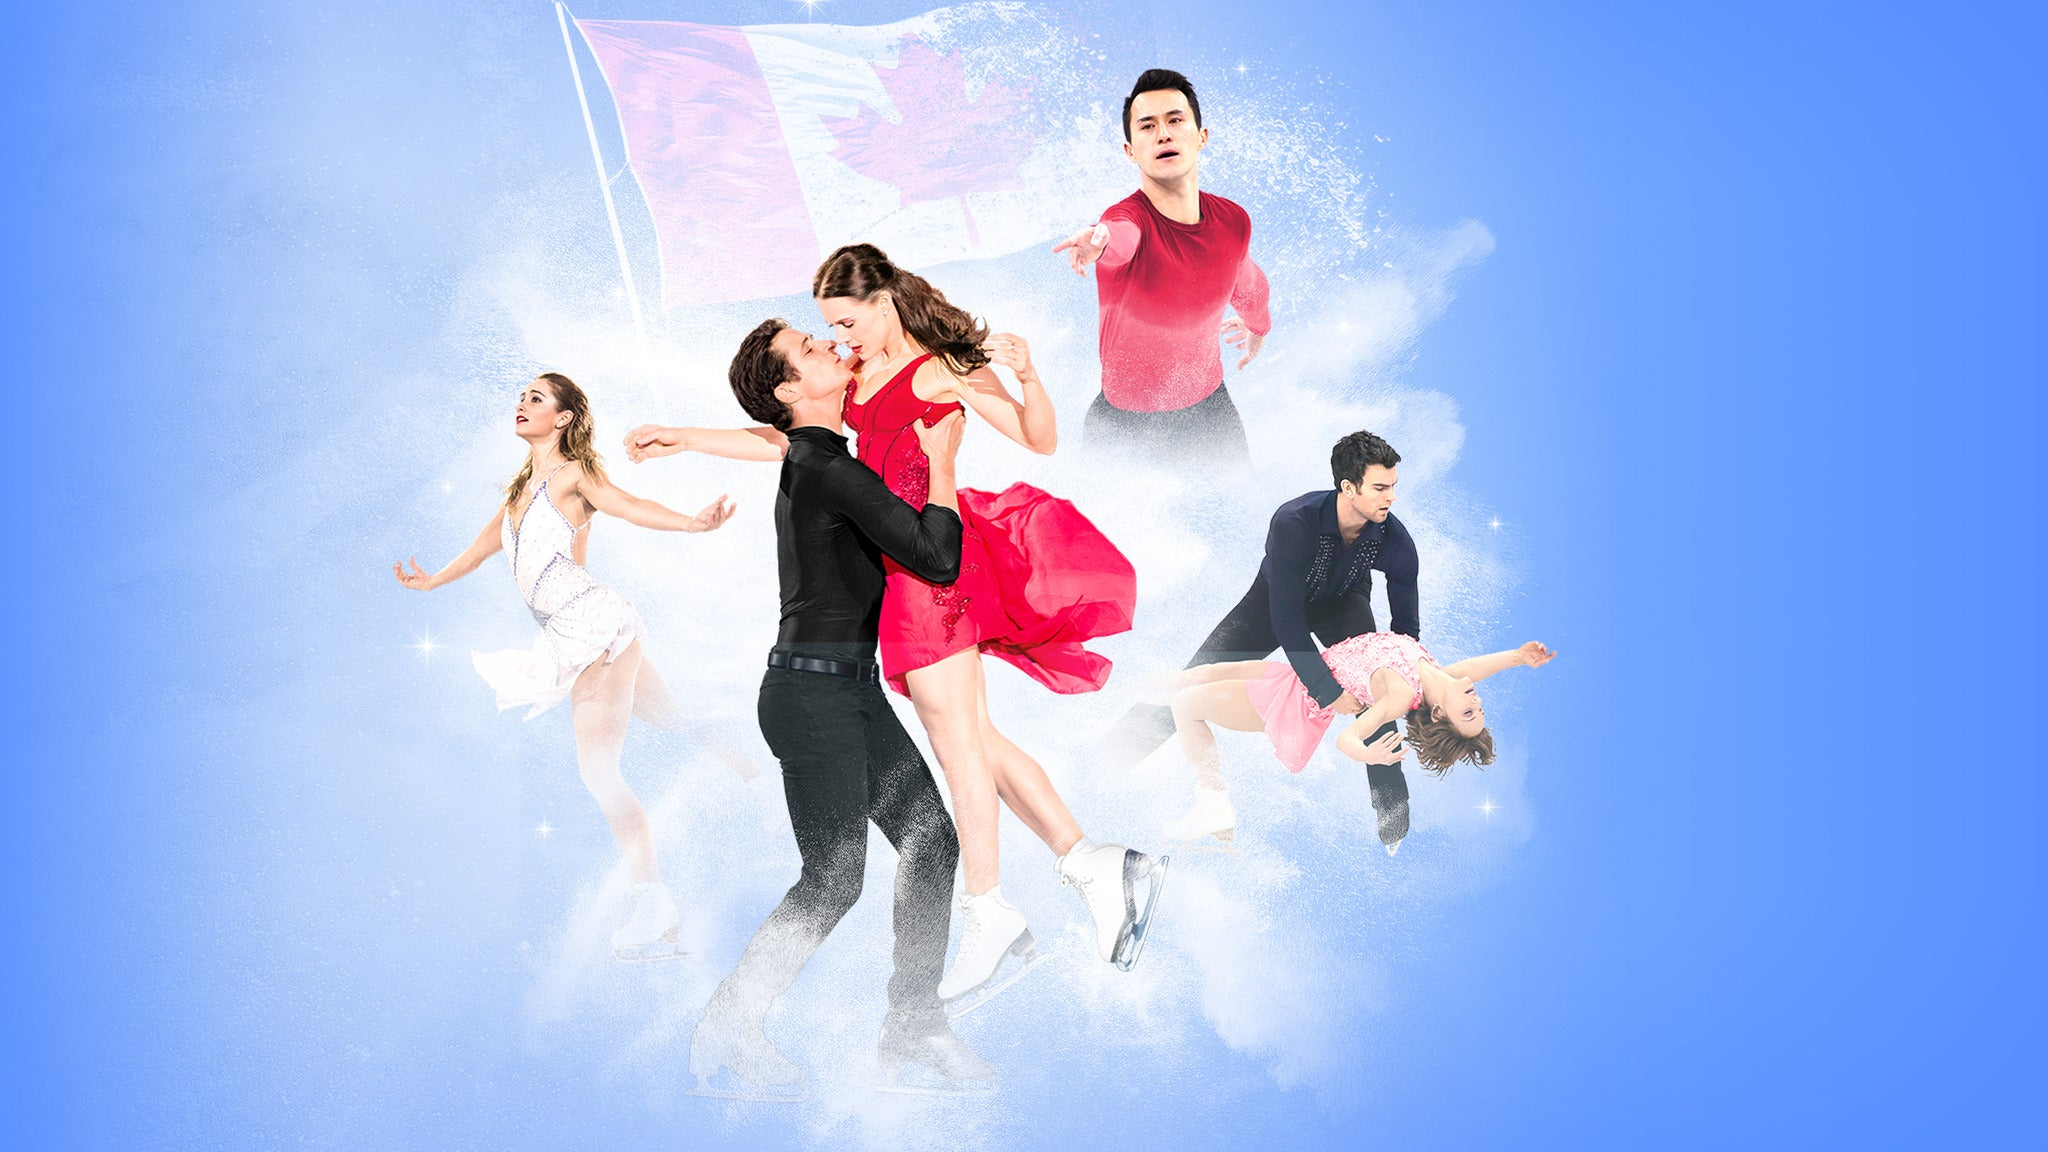 Investors Group Stars on Ice presented by Lindt Tickets